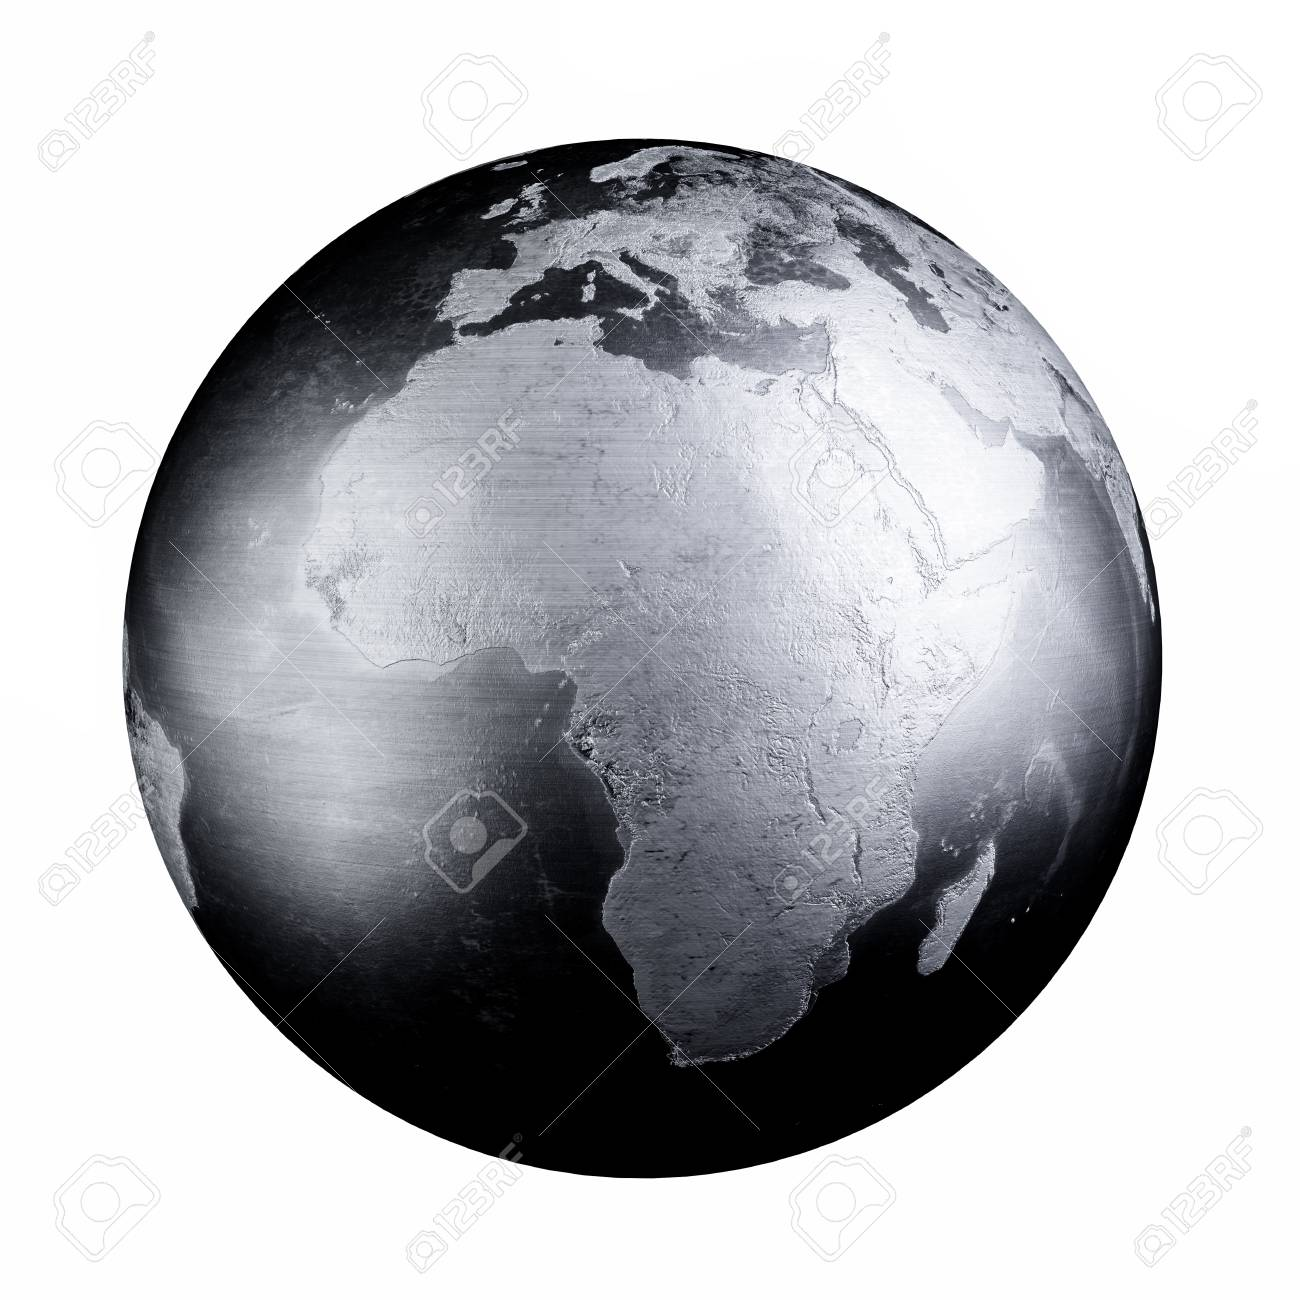 Black iron metal world map earth 3d rendering illustration isolated black iron metal world map earth 3d rendering illustration isolated on white background stock illustration gumiabroncs Images